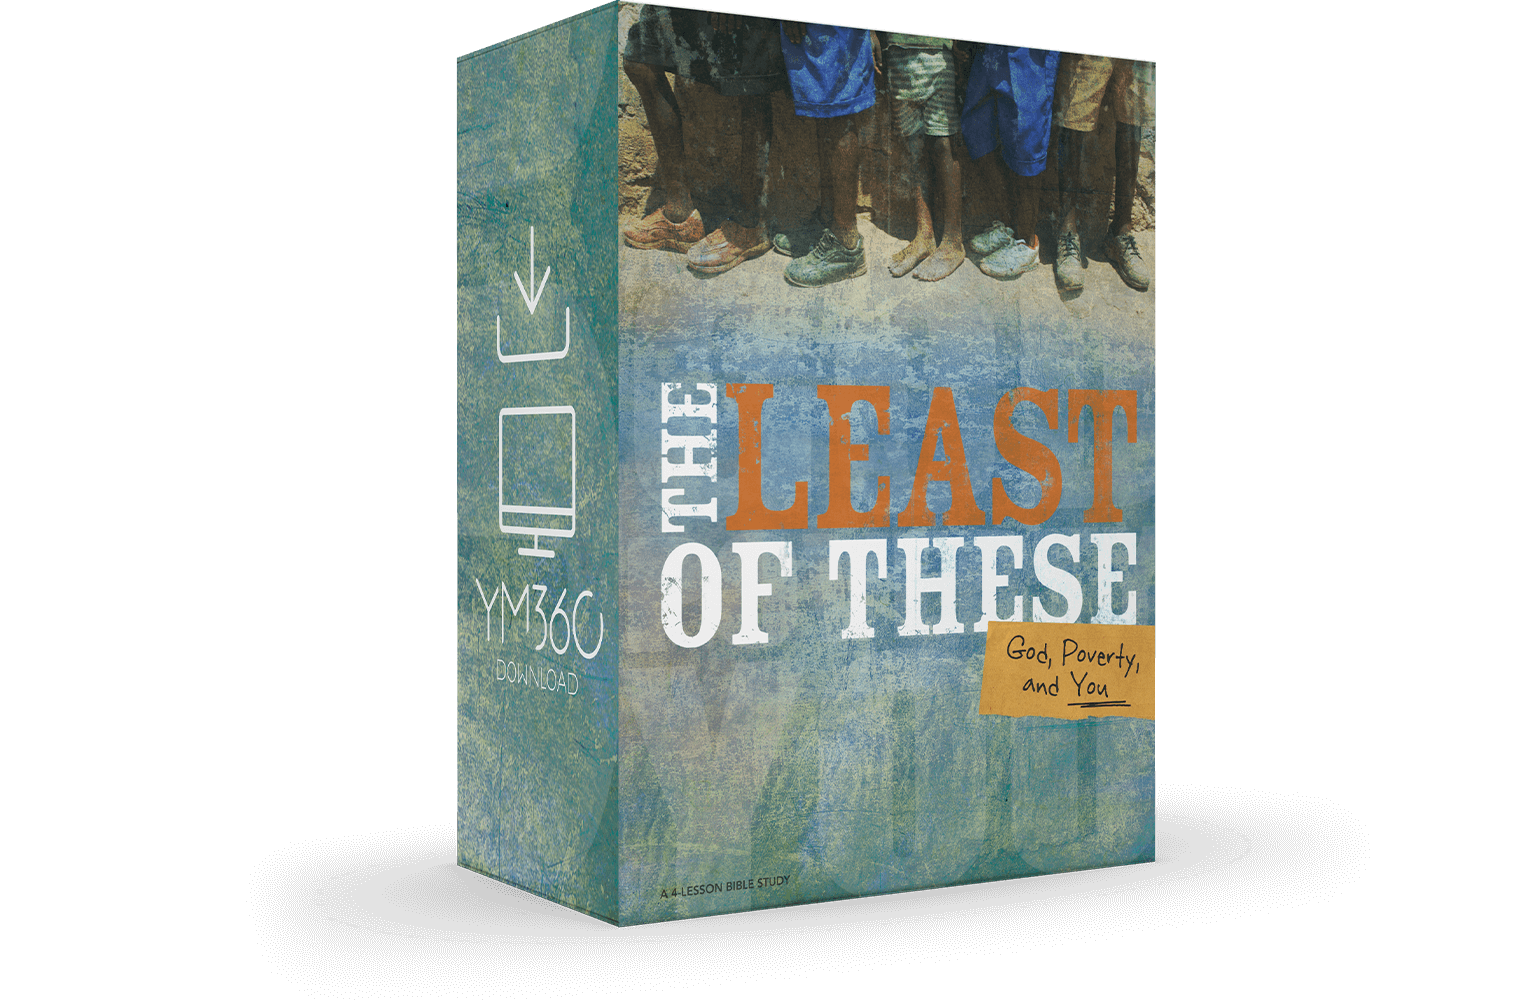 The Least Of These: God, Poverty, and You